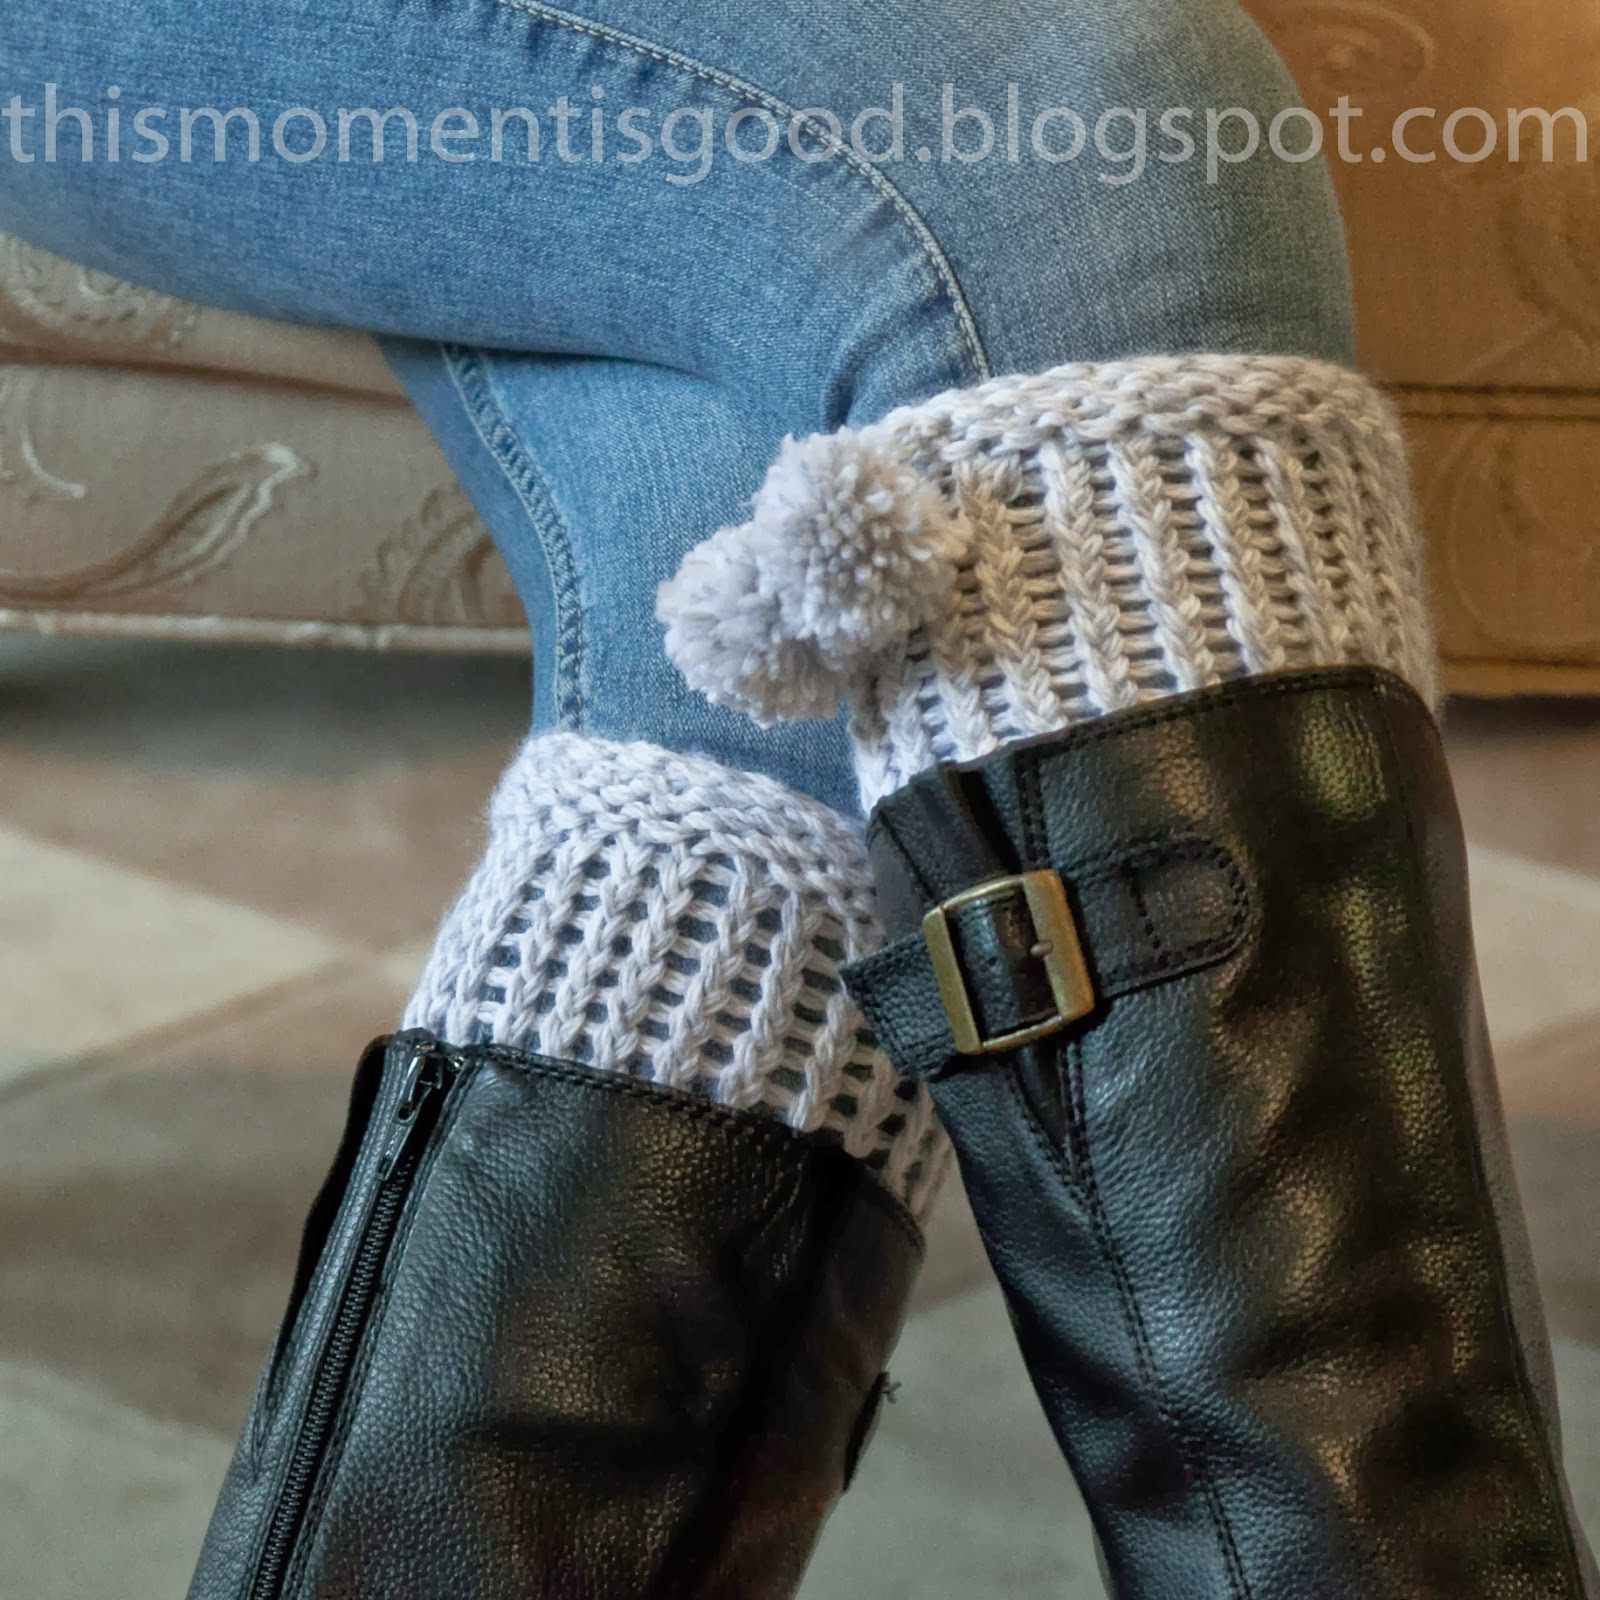 LOOM KNIT BOOT CUFF | Loom Knitting by This Moment is Good!